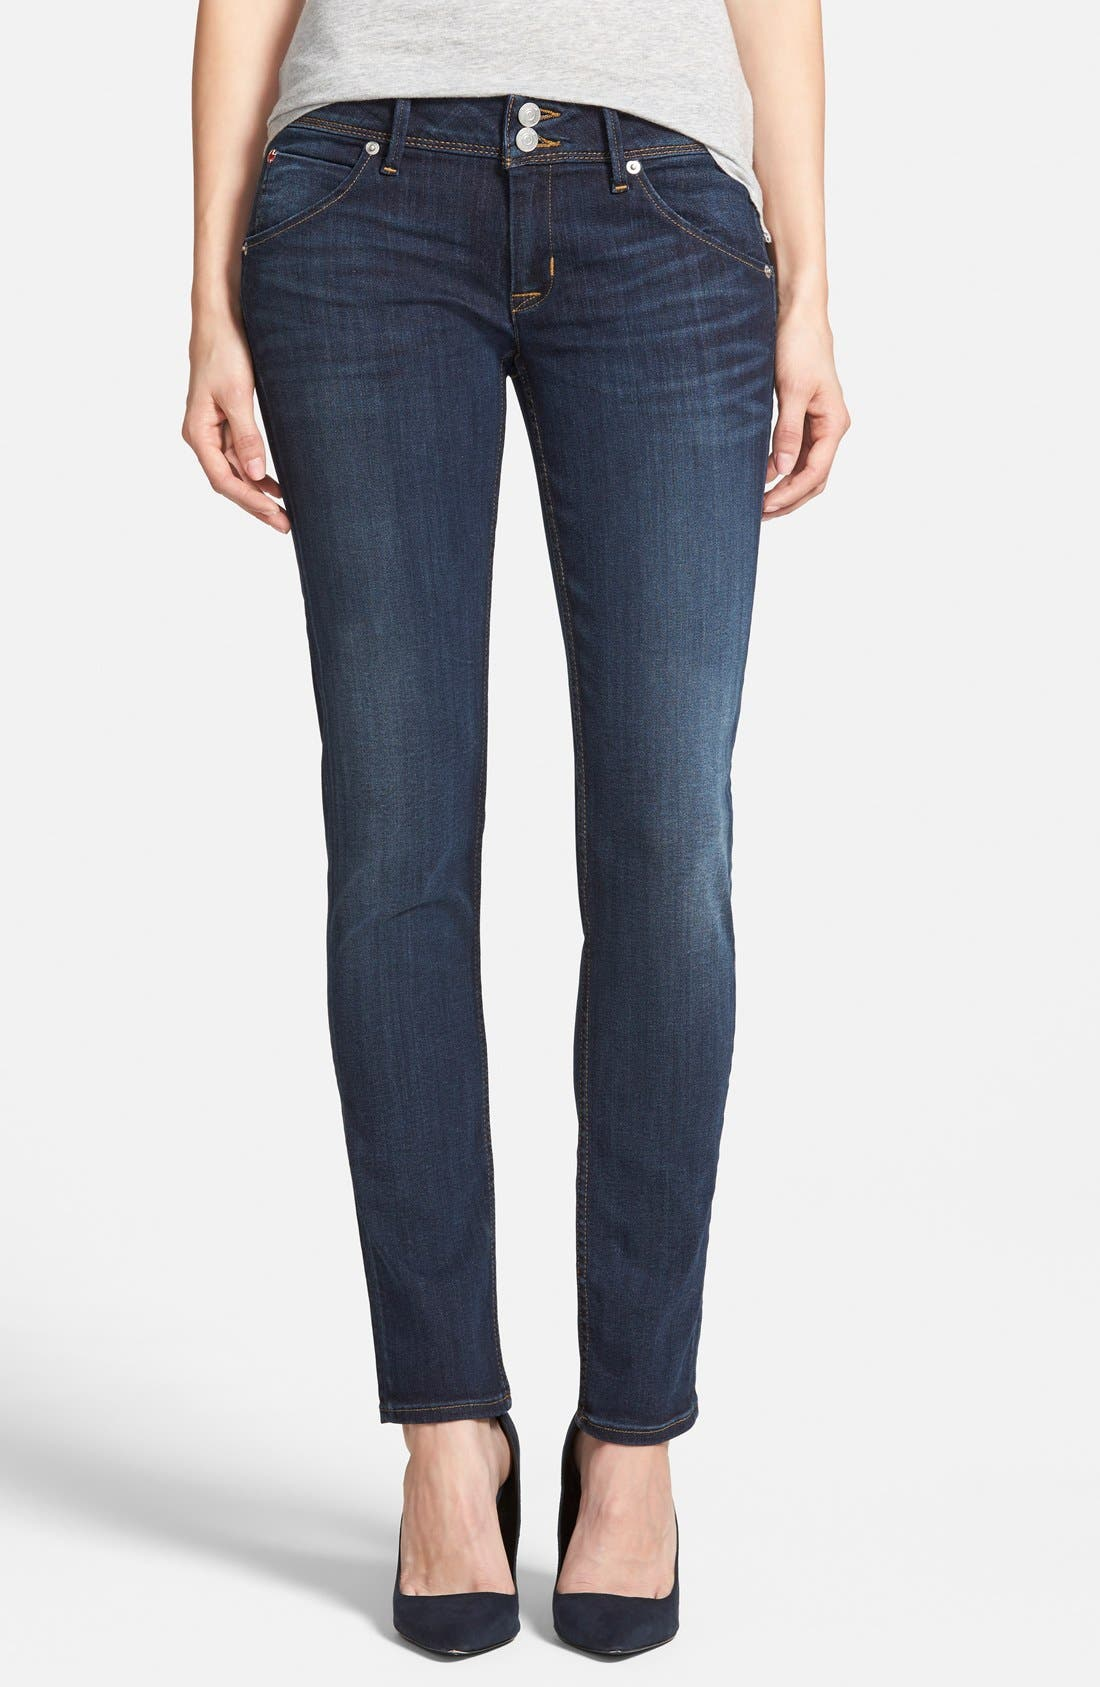 'Collin' Skinny Jeans,                         Main,                         color, 401